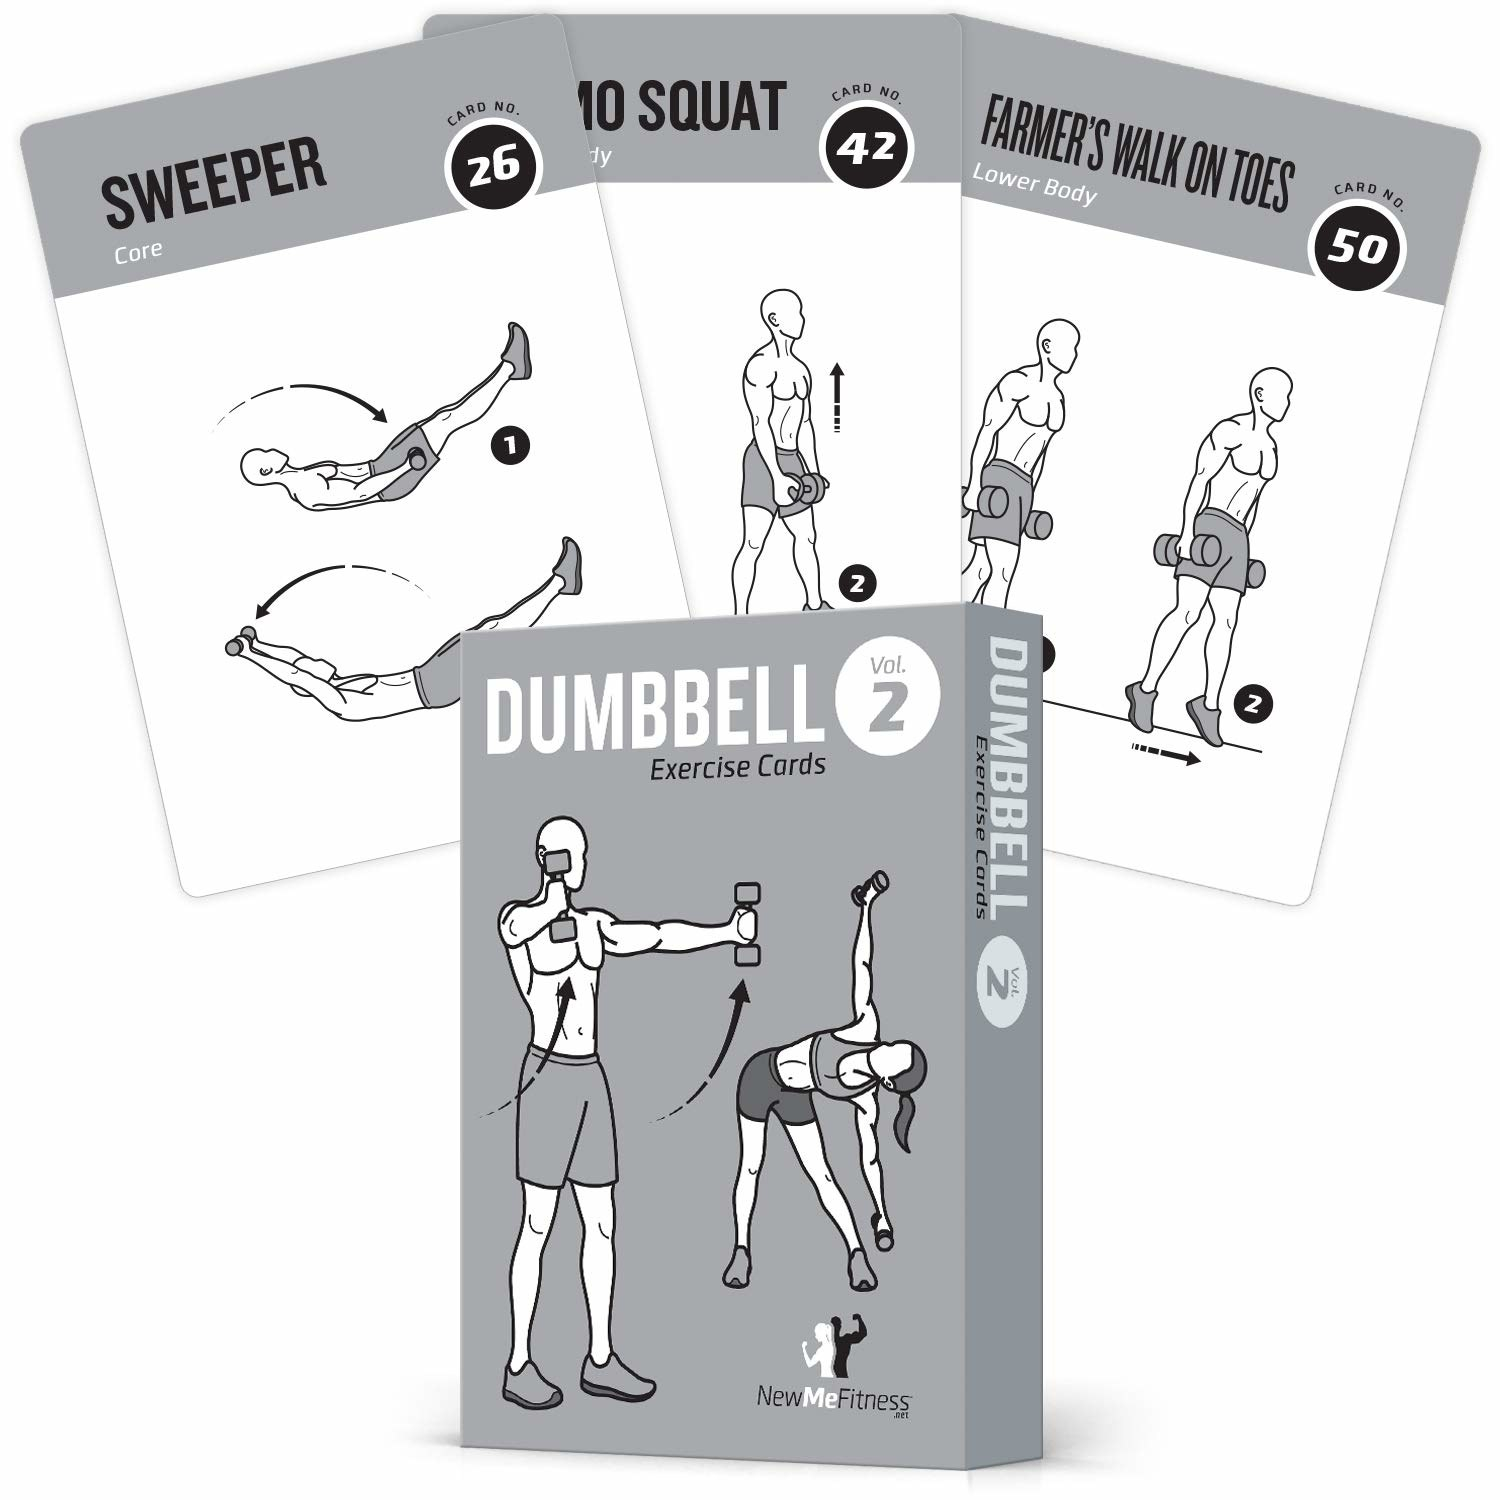 the exercise cards which come in a deck and have various illustrations of workouts on them